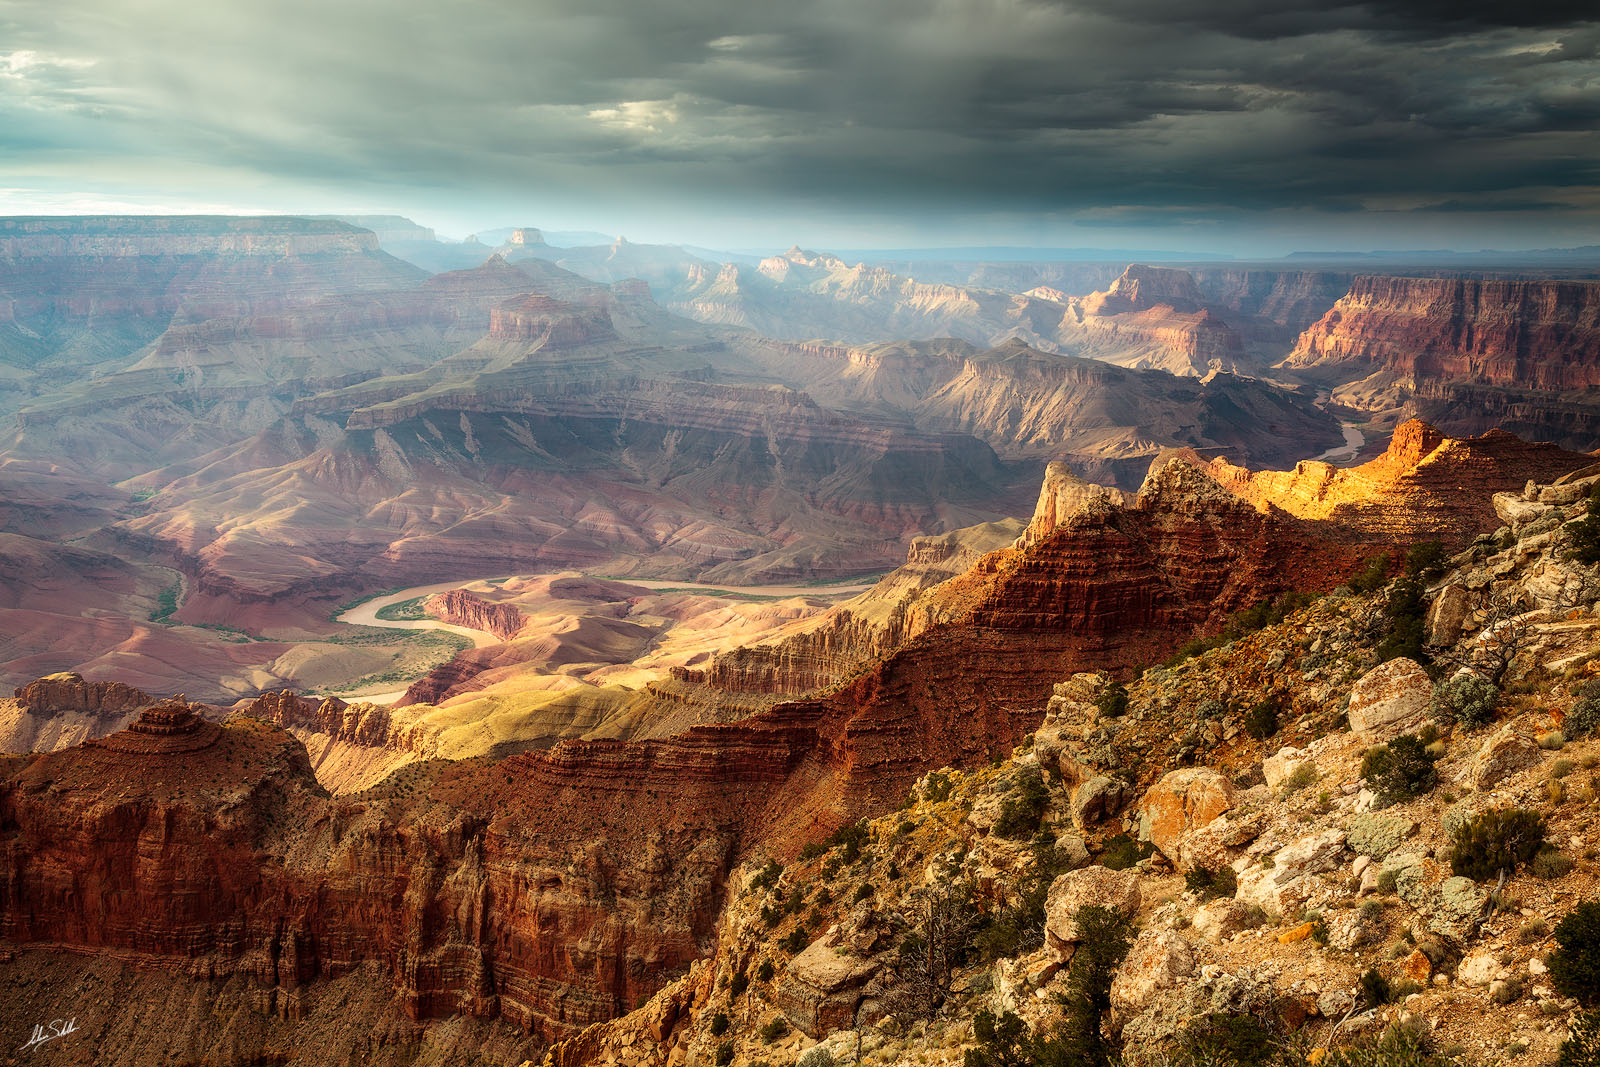 Afternoon light in the Grand Canyon and Colorado River. From Lipan Point on the South Rim of the canyon. © Adam Schallau, All...